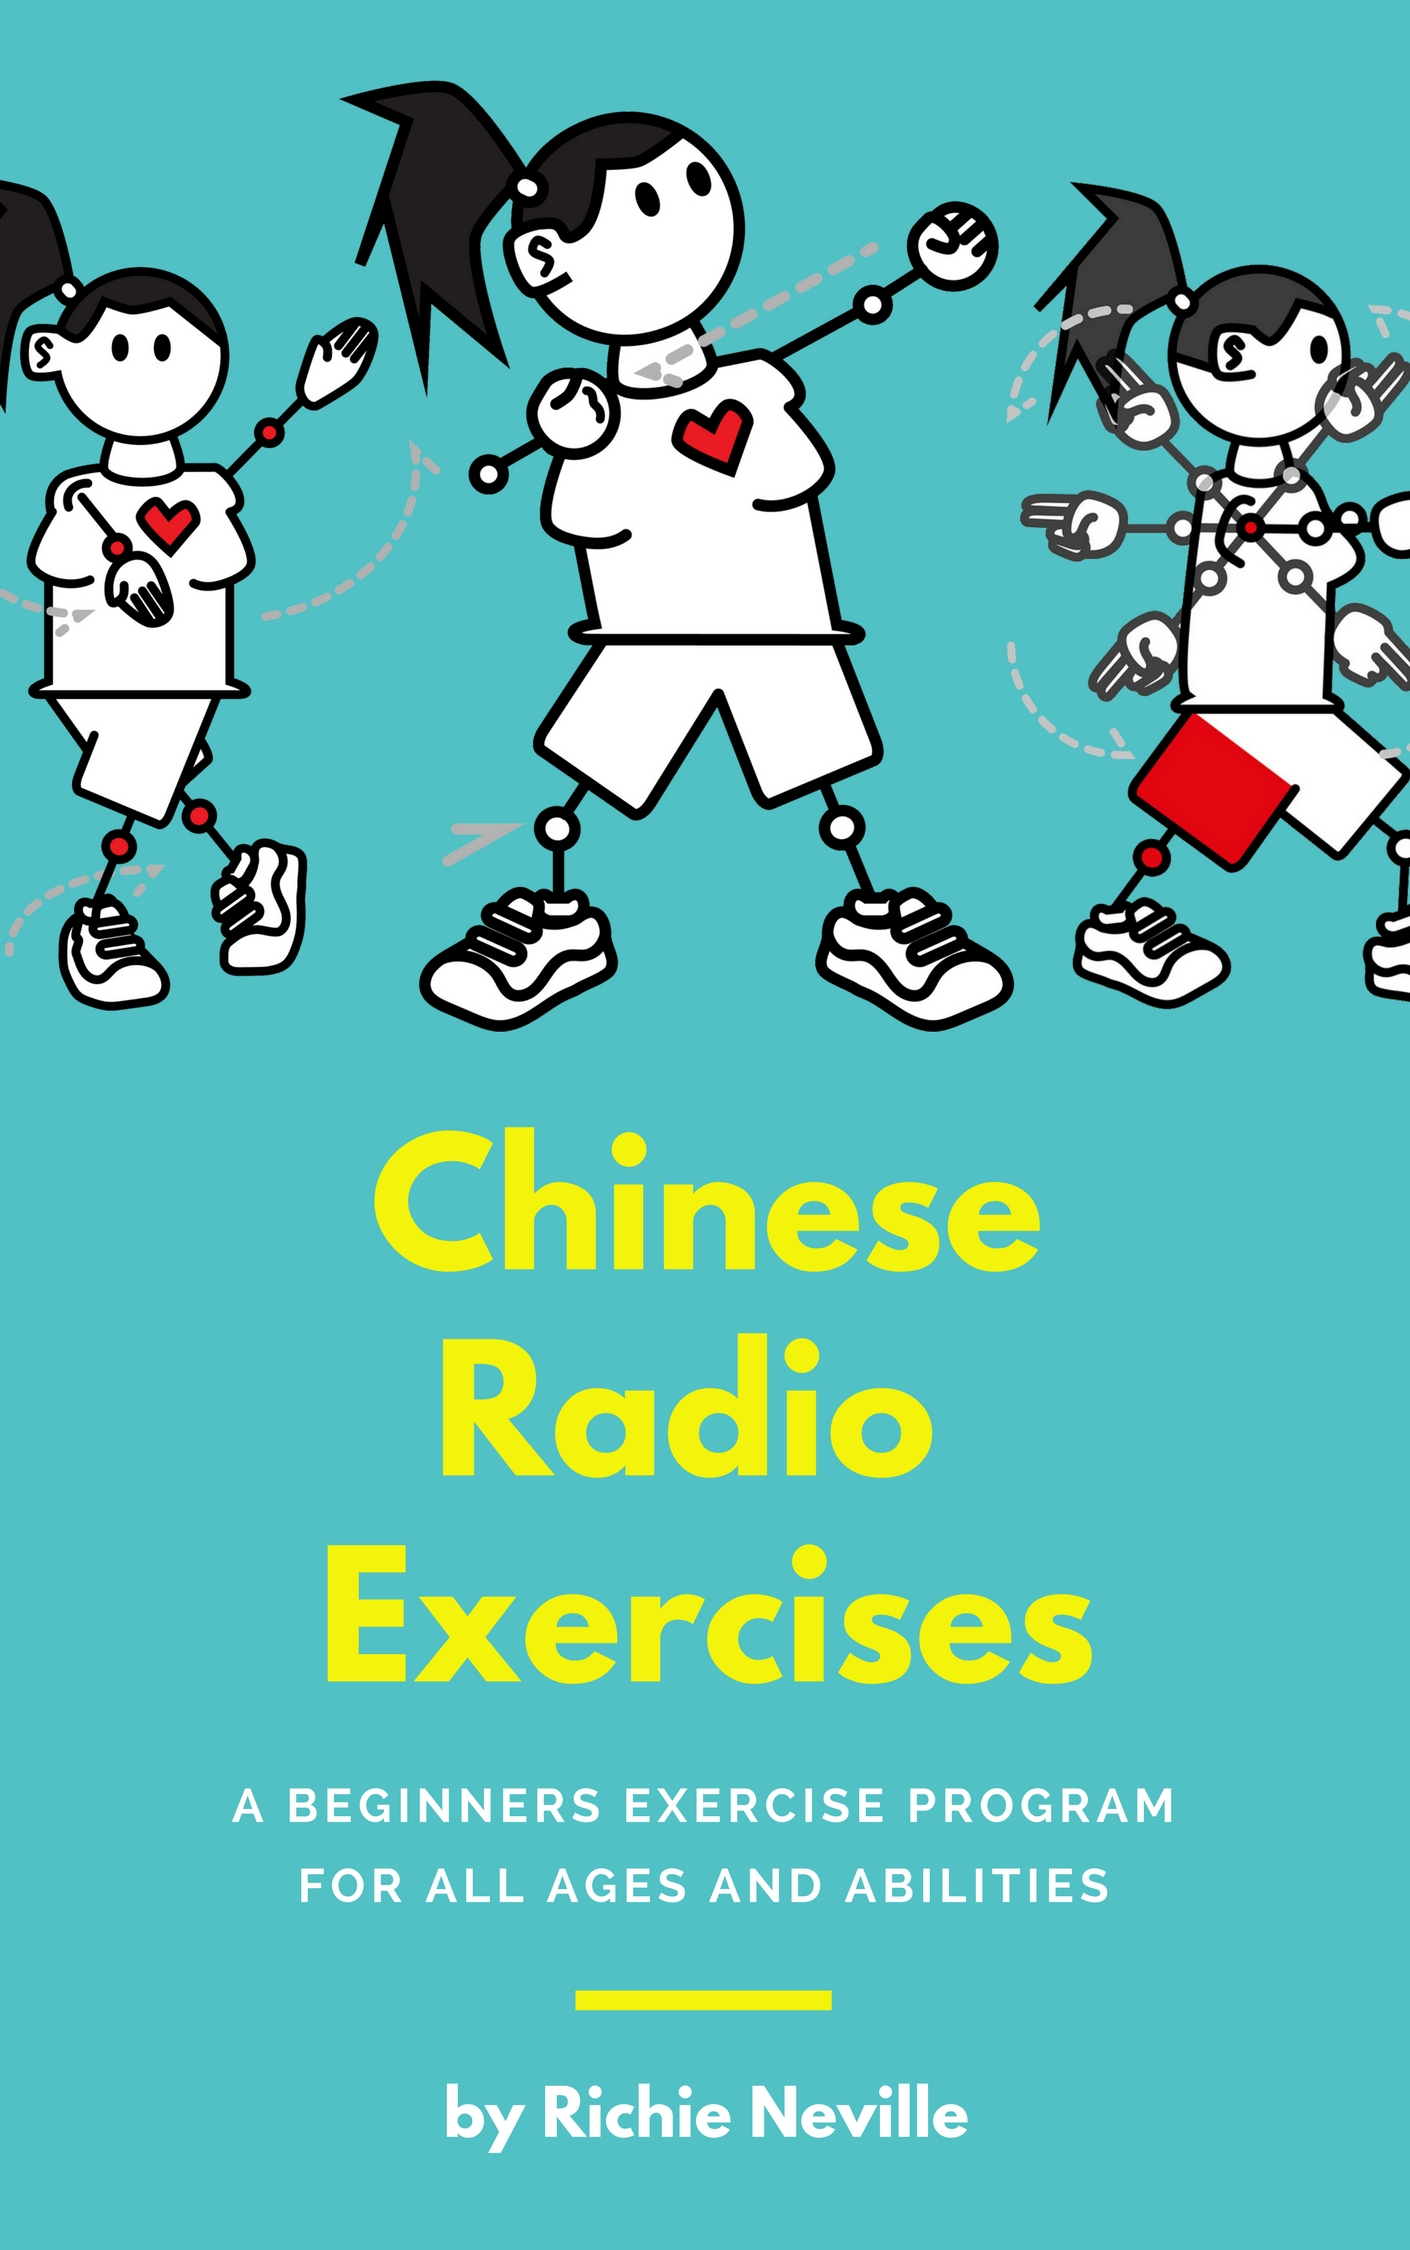 Chinese Radio Exercises: A Beginners Exercise Program for all Ages and  Abilities, an Ebook by Richie Neville